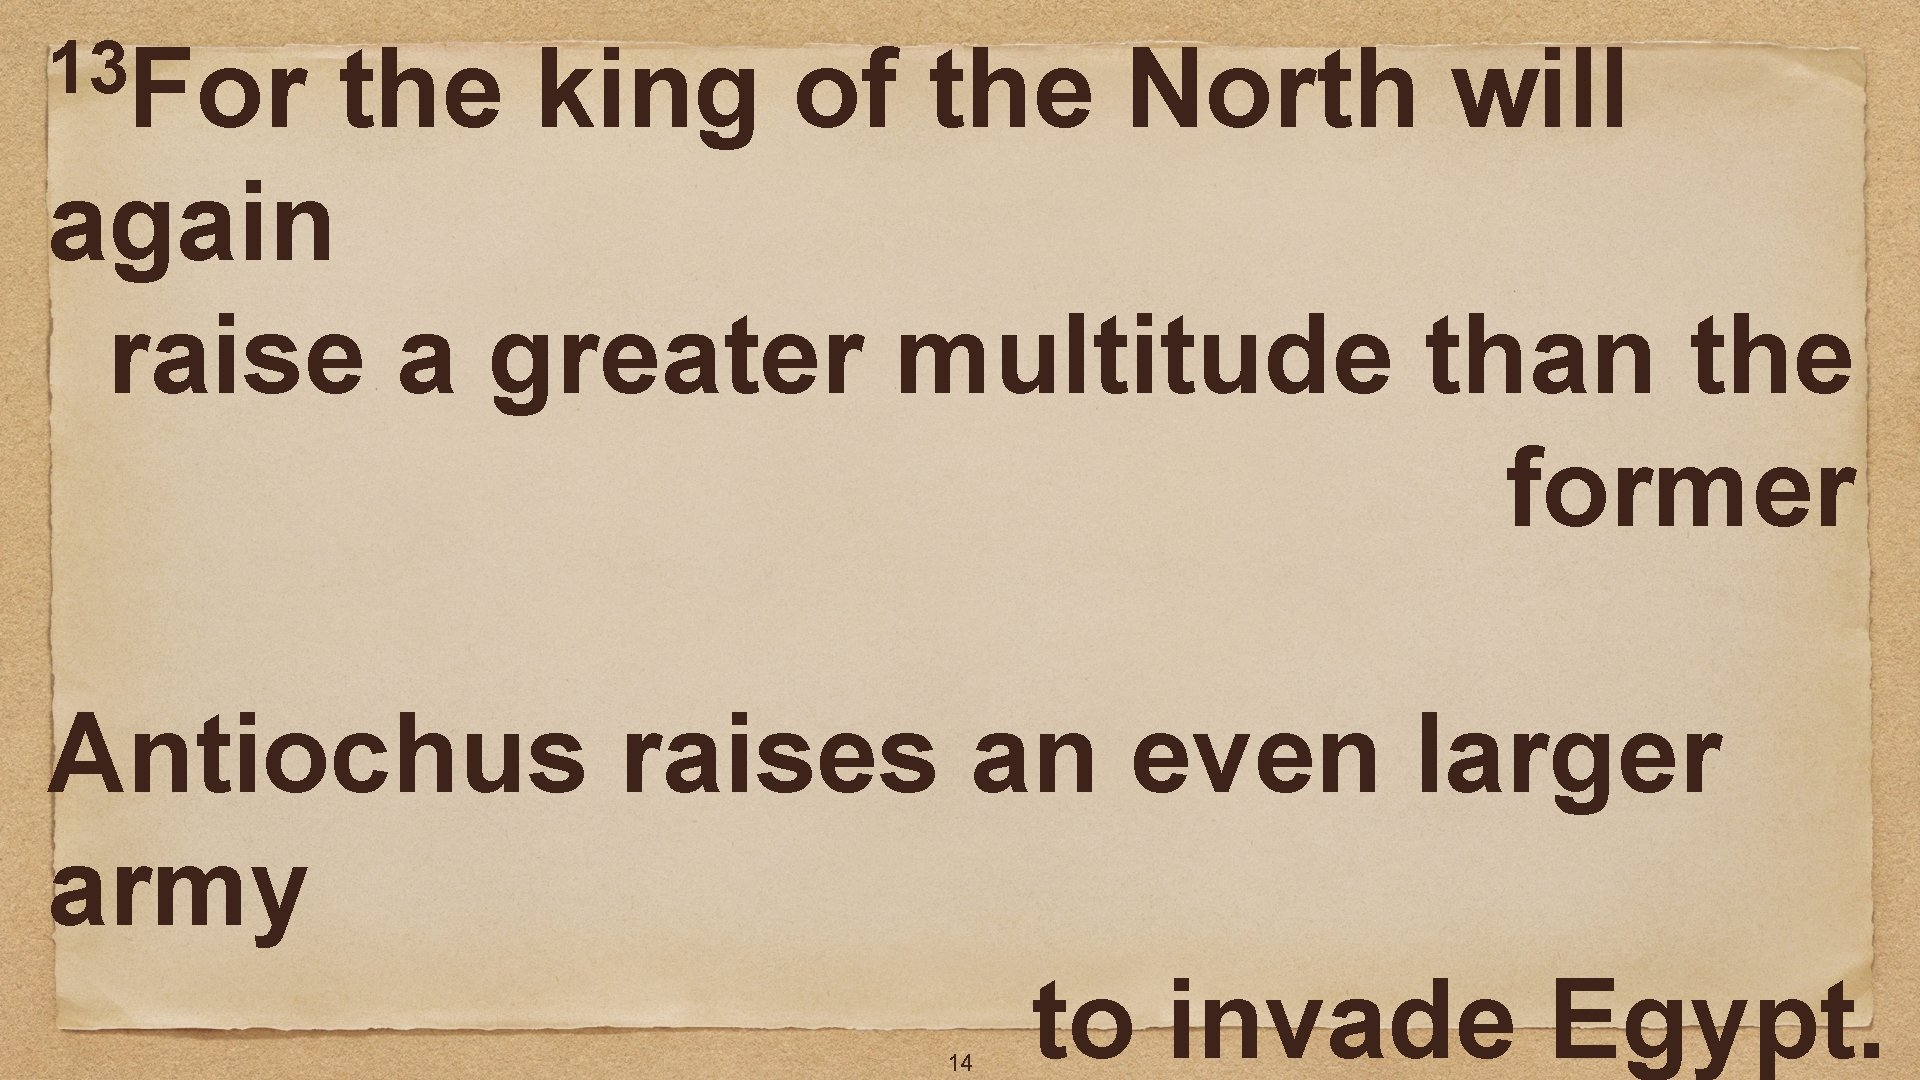 13 For the king of the North will again raise a greater multitude than